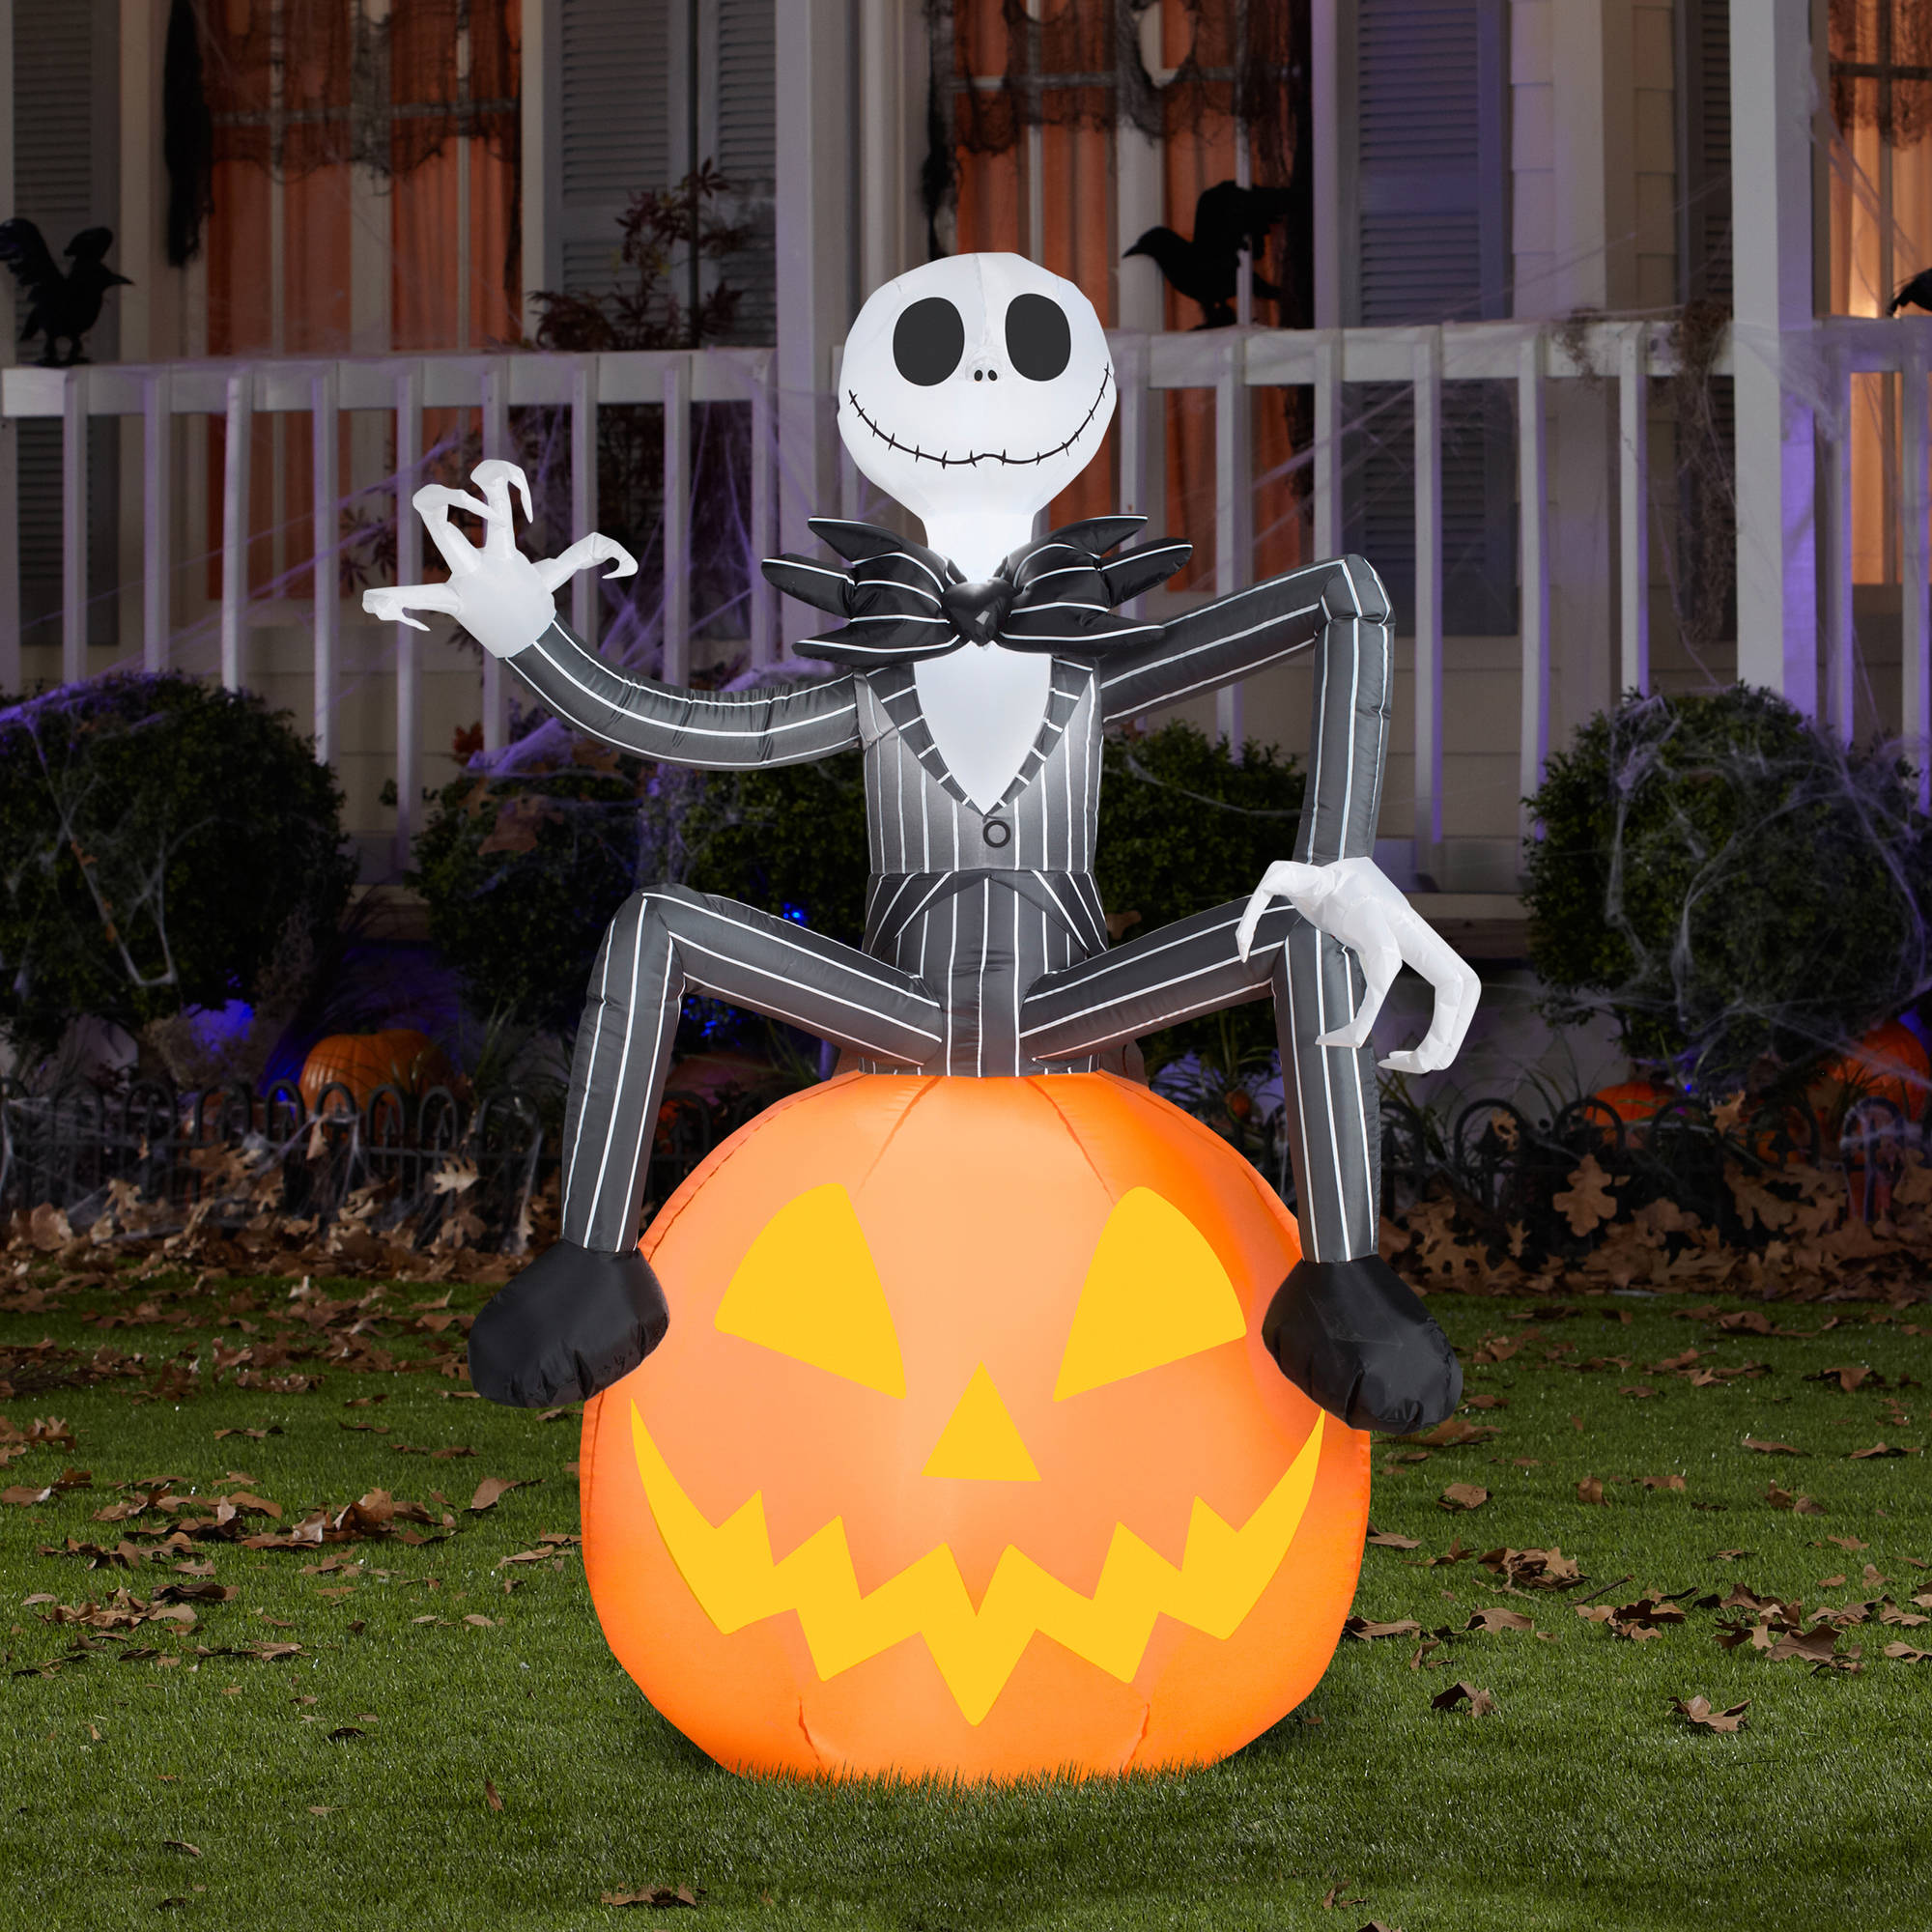 Nightmare before Christmas 5' Tall Disney Jack Skellington with Pumpkin Halloween Airblown Inflatable